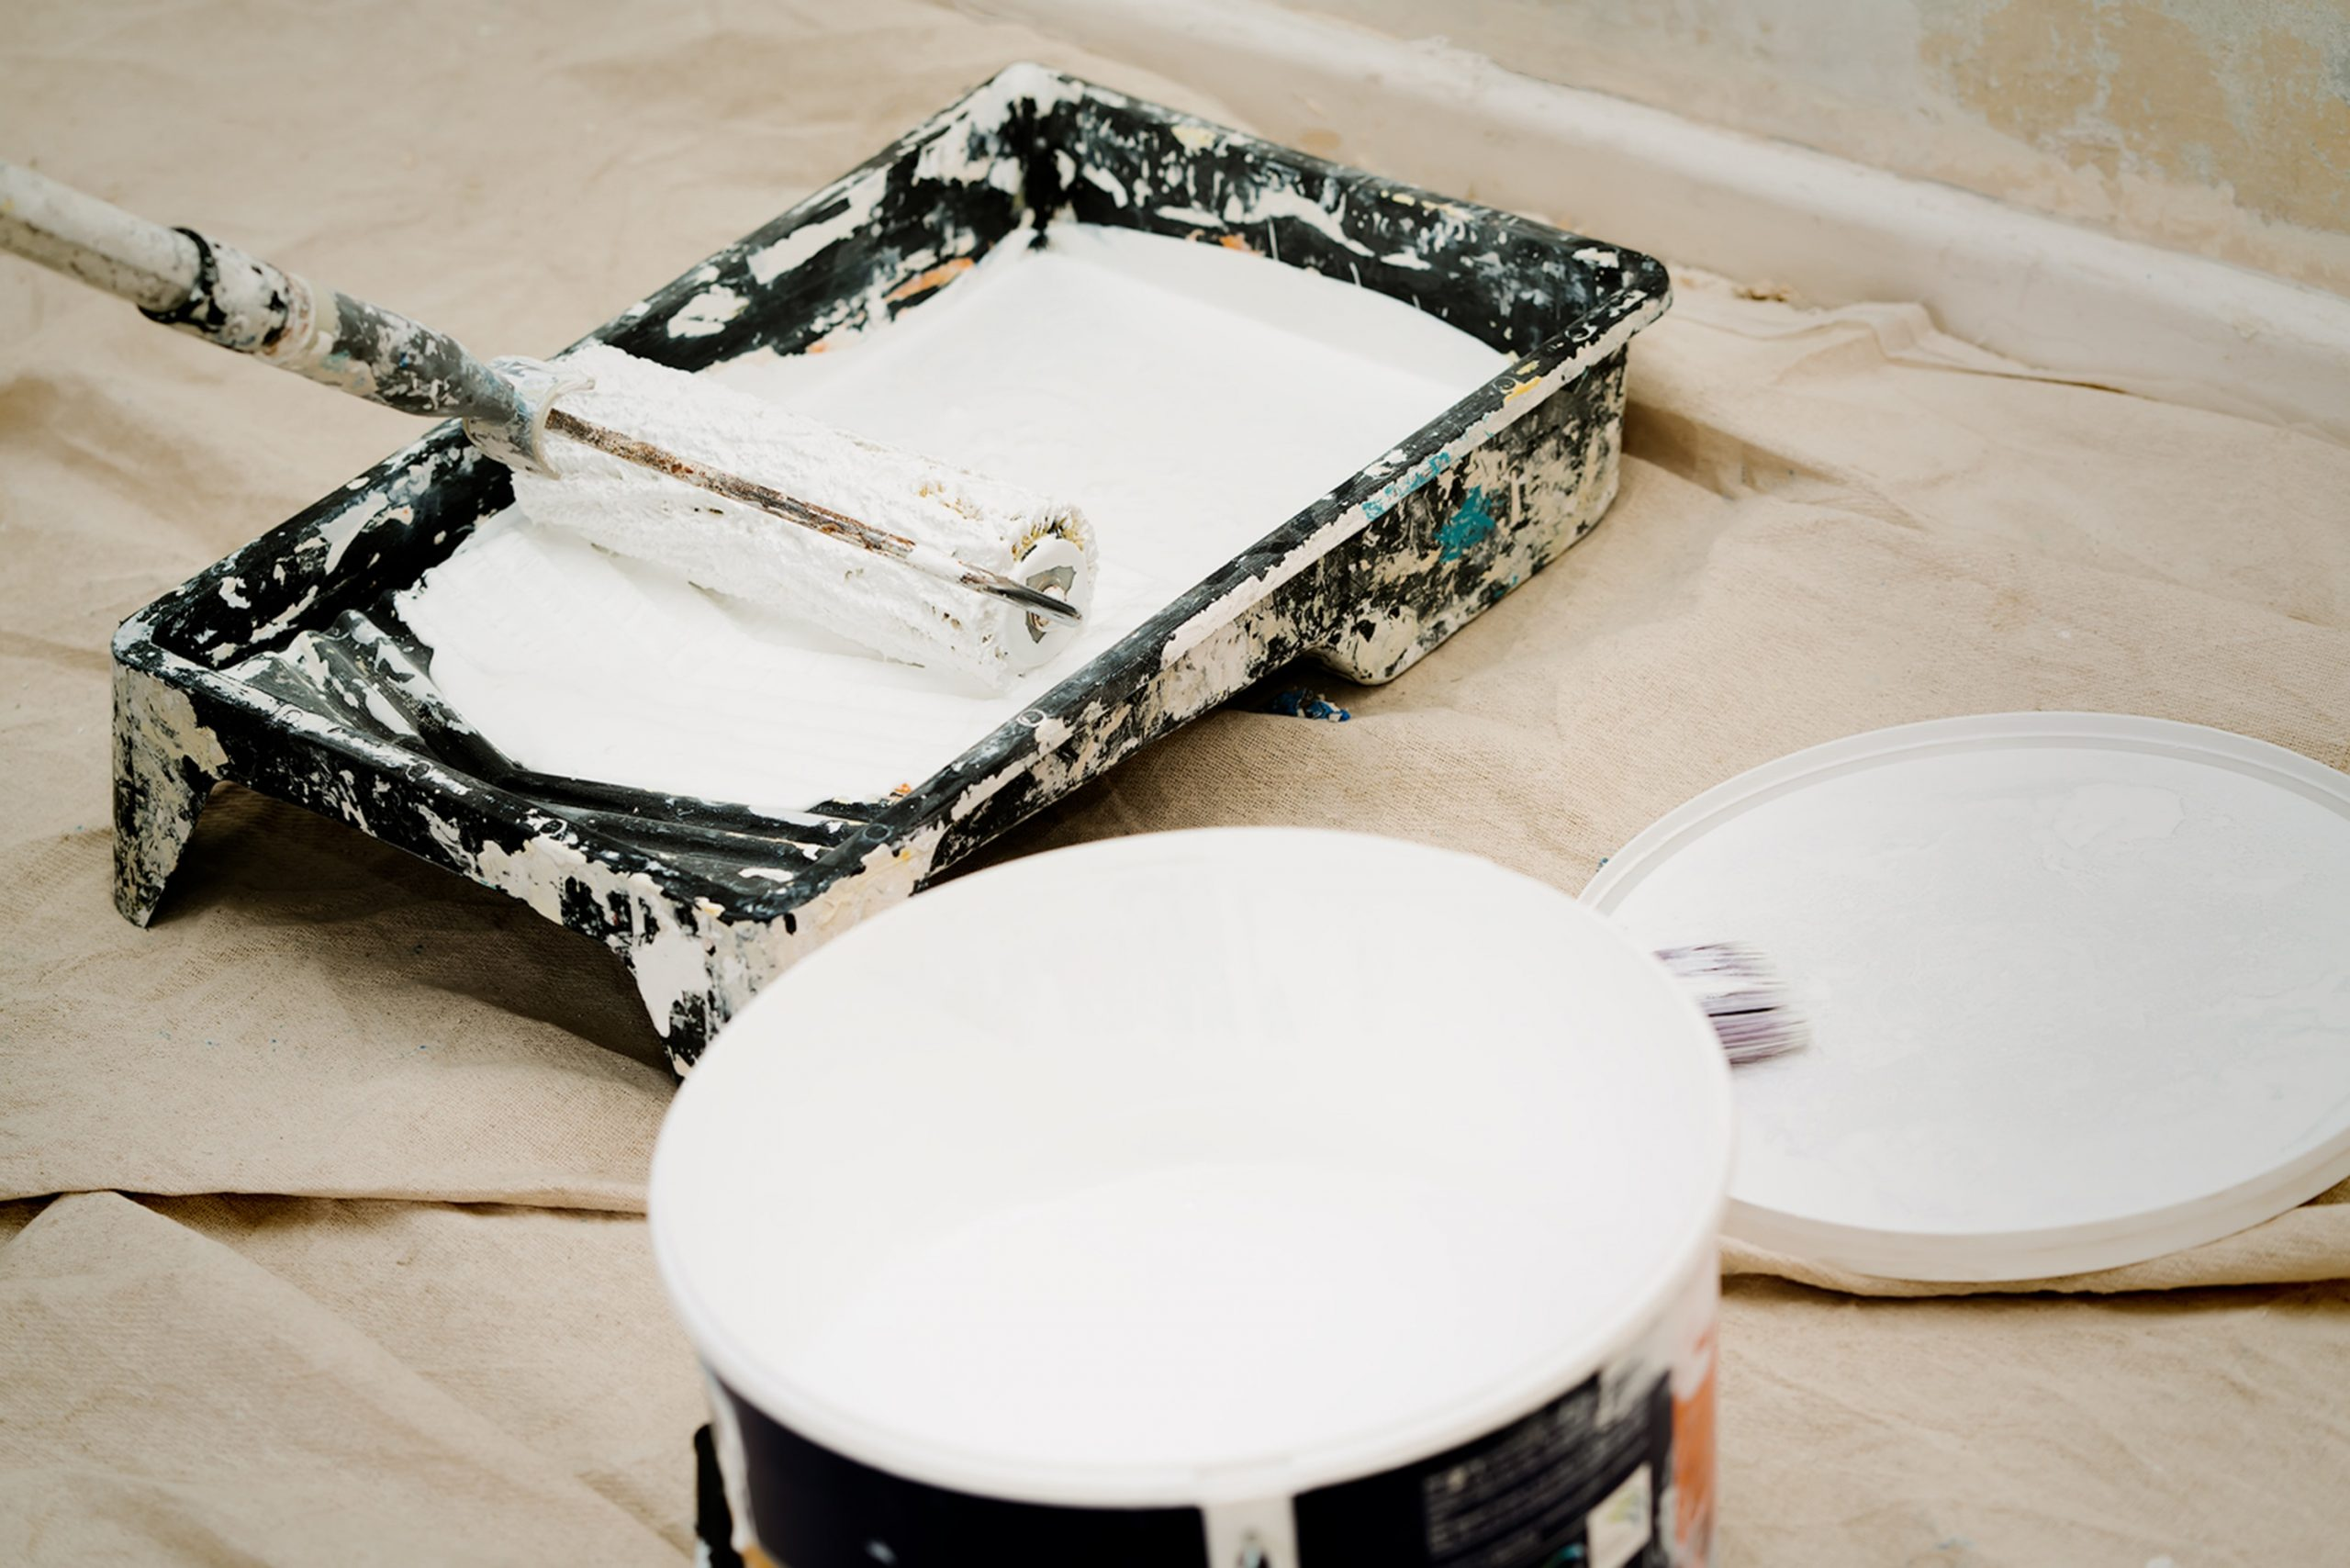 Painters Using White Paint and Rollers